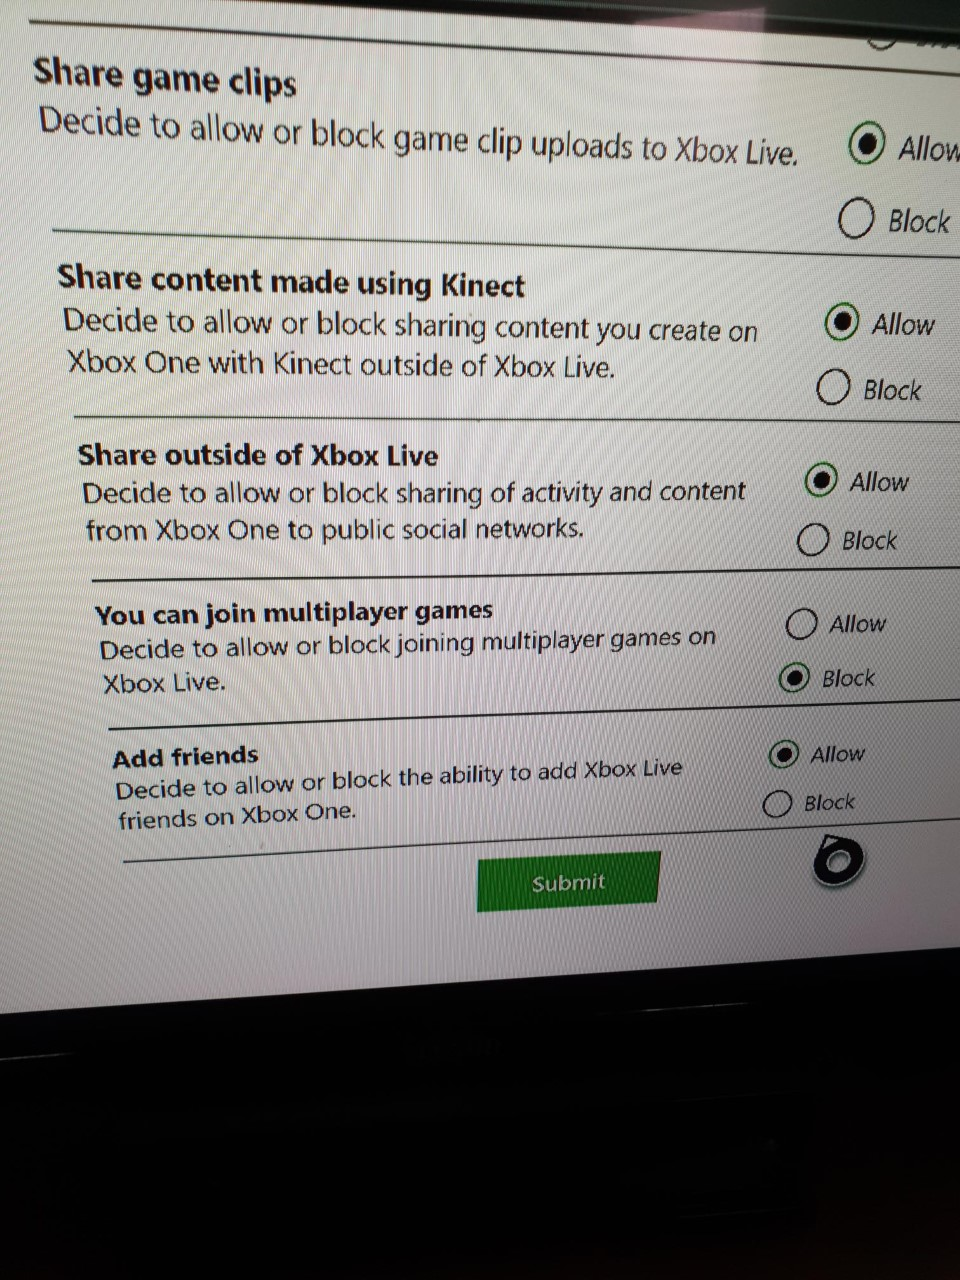 Xbox Fortnite Online Play Is Blocked For This Account Blocked Multiplayer Microsoft Community